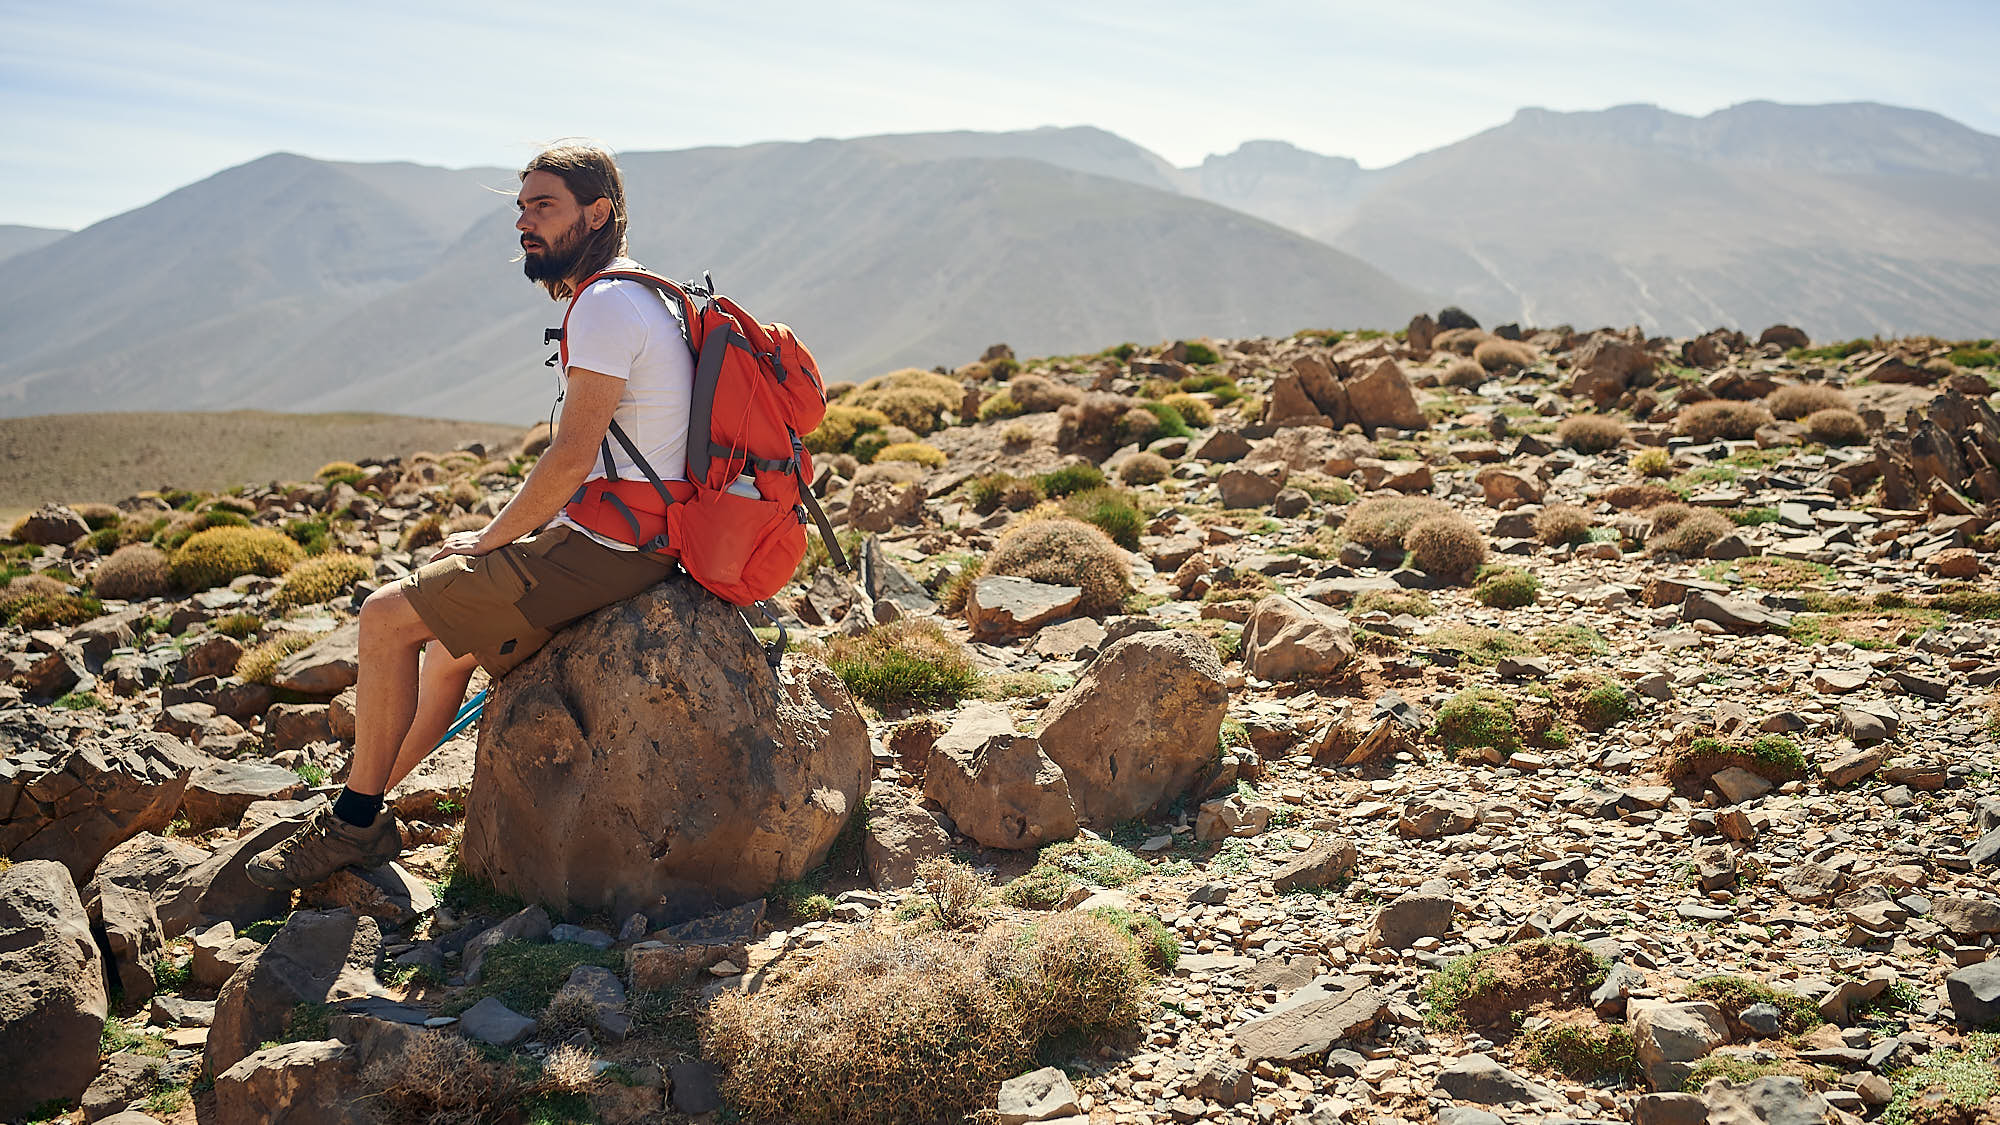 Hiker taking a rest on a boulder in Morocco